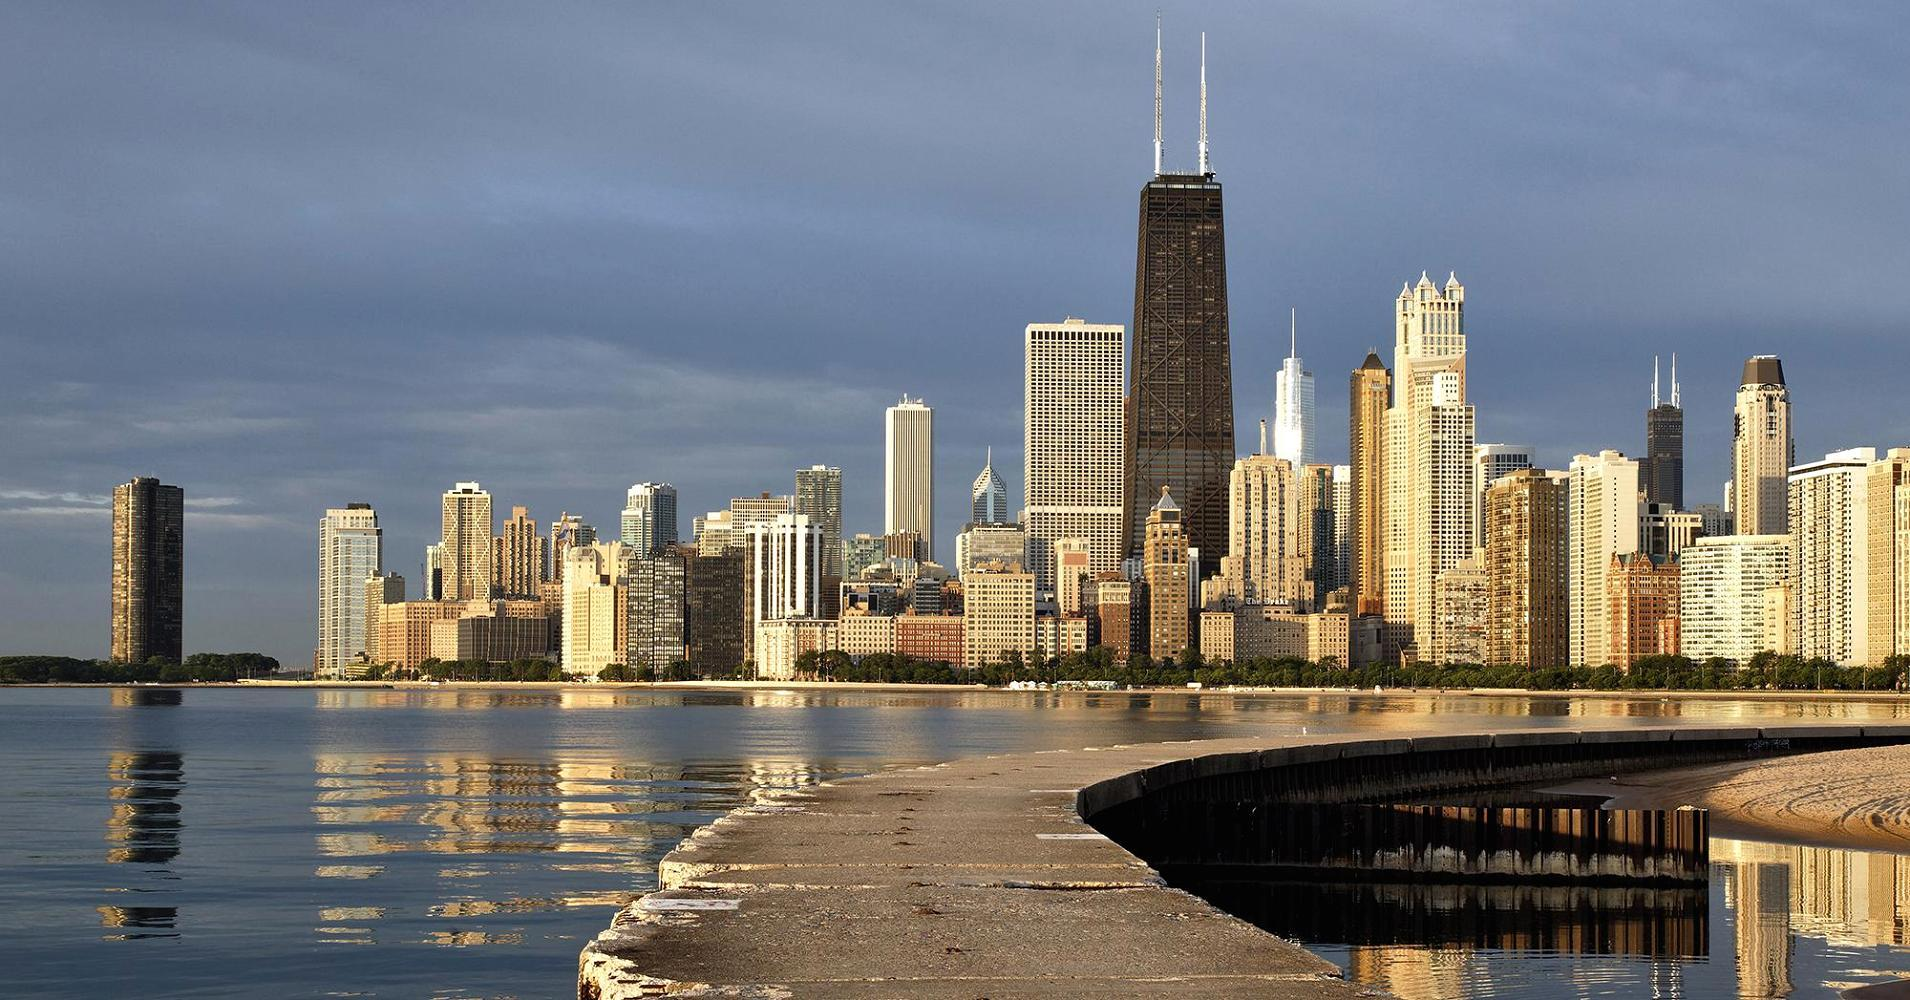 Chicago downgrades: the takeaways for investors